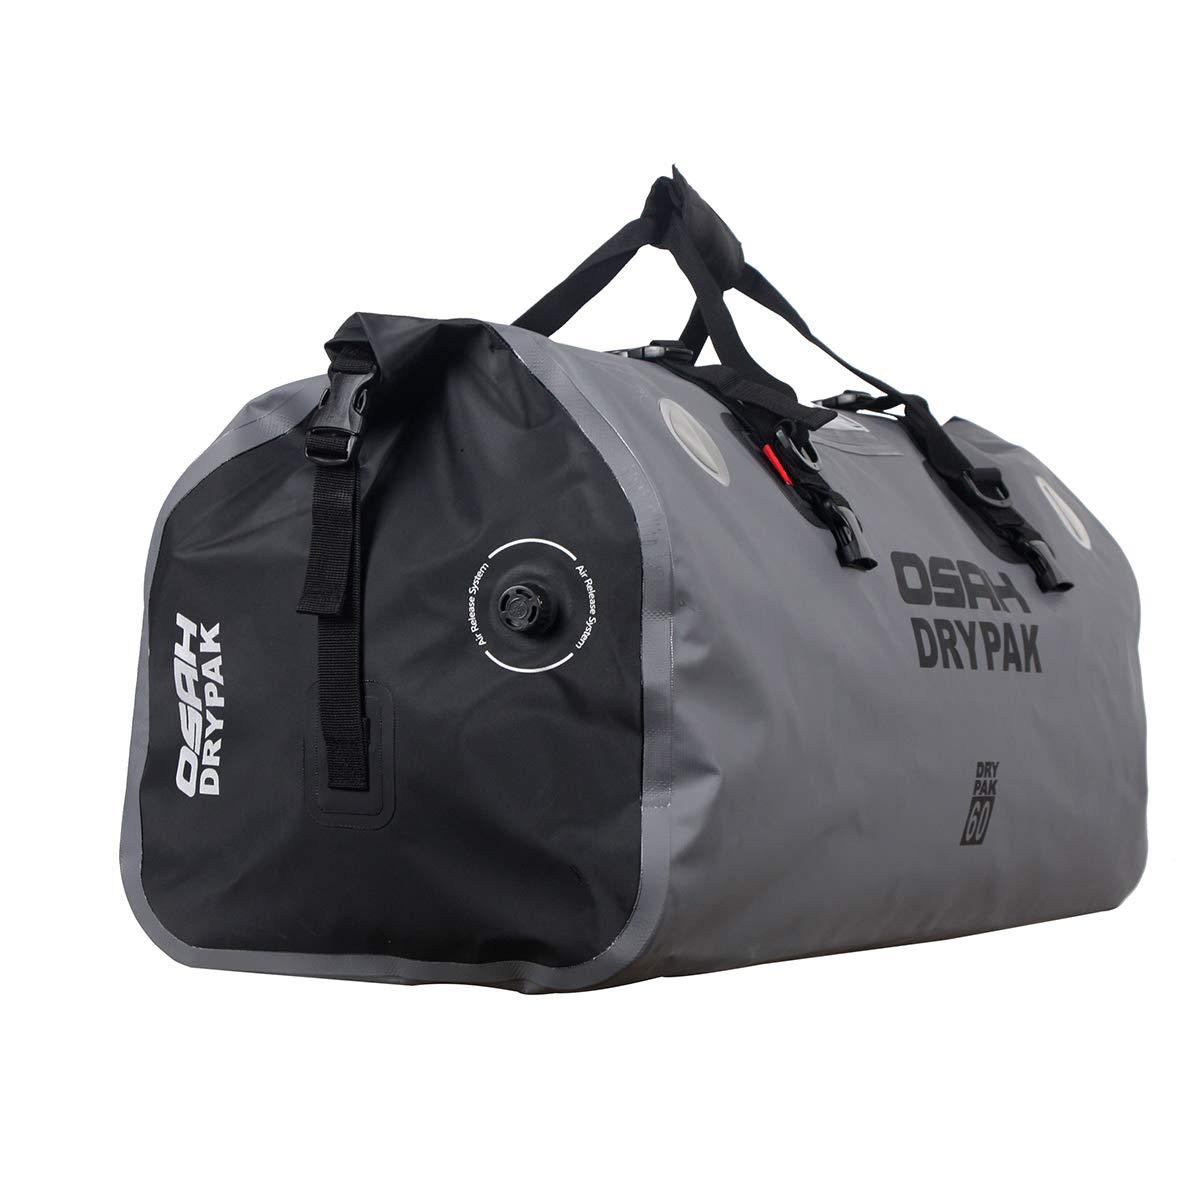 60L Outdoor Kayaking Motorcycle Dry Duffle Tail Bag Waterproof Saddle Roll Bag Luggage Holdall Reflective Black 40L for Motorcycling Travel Camping Cycling Gray Hiking